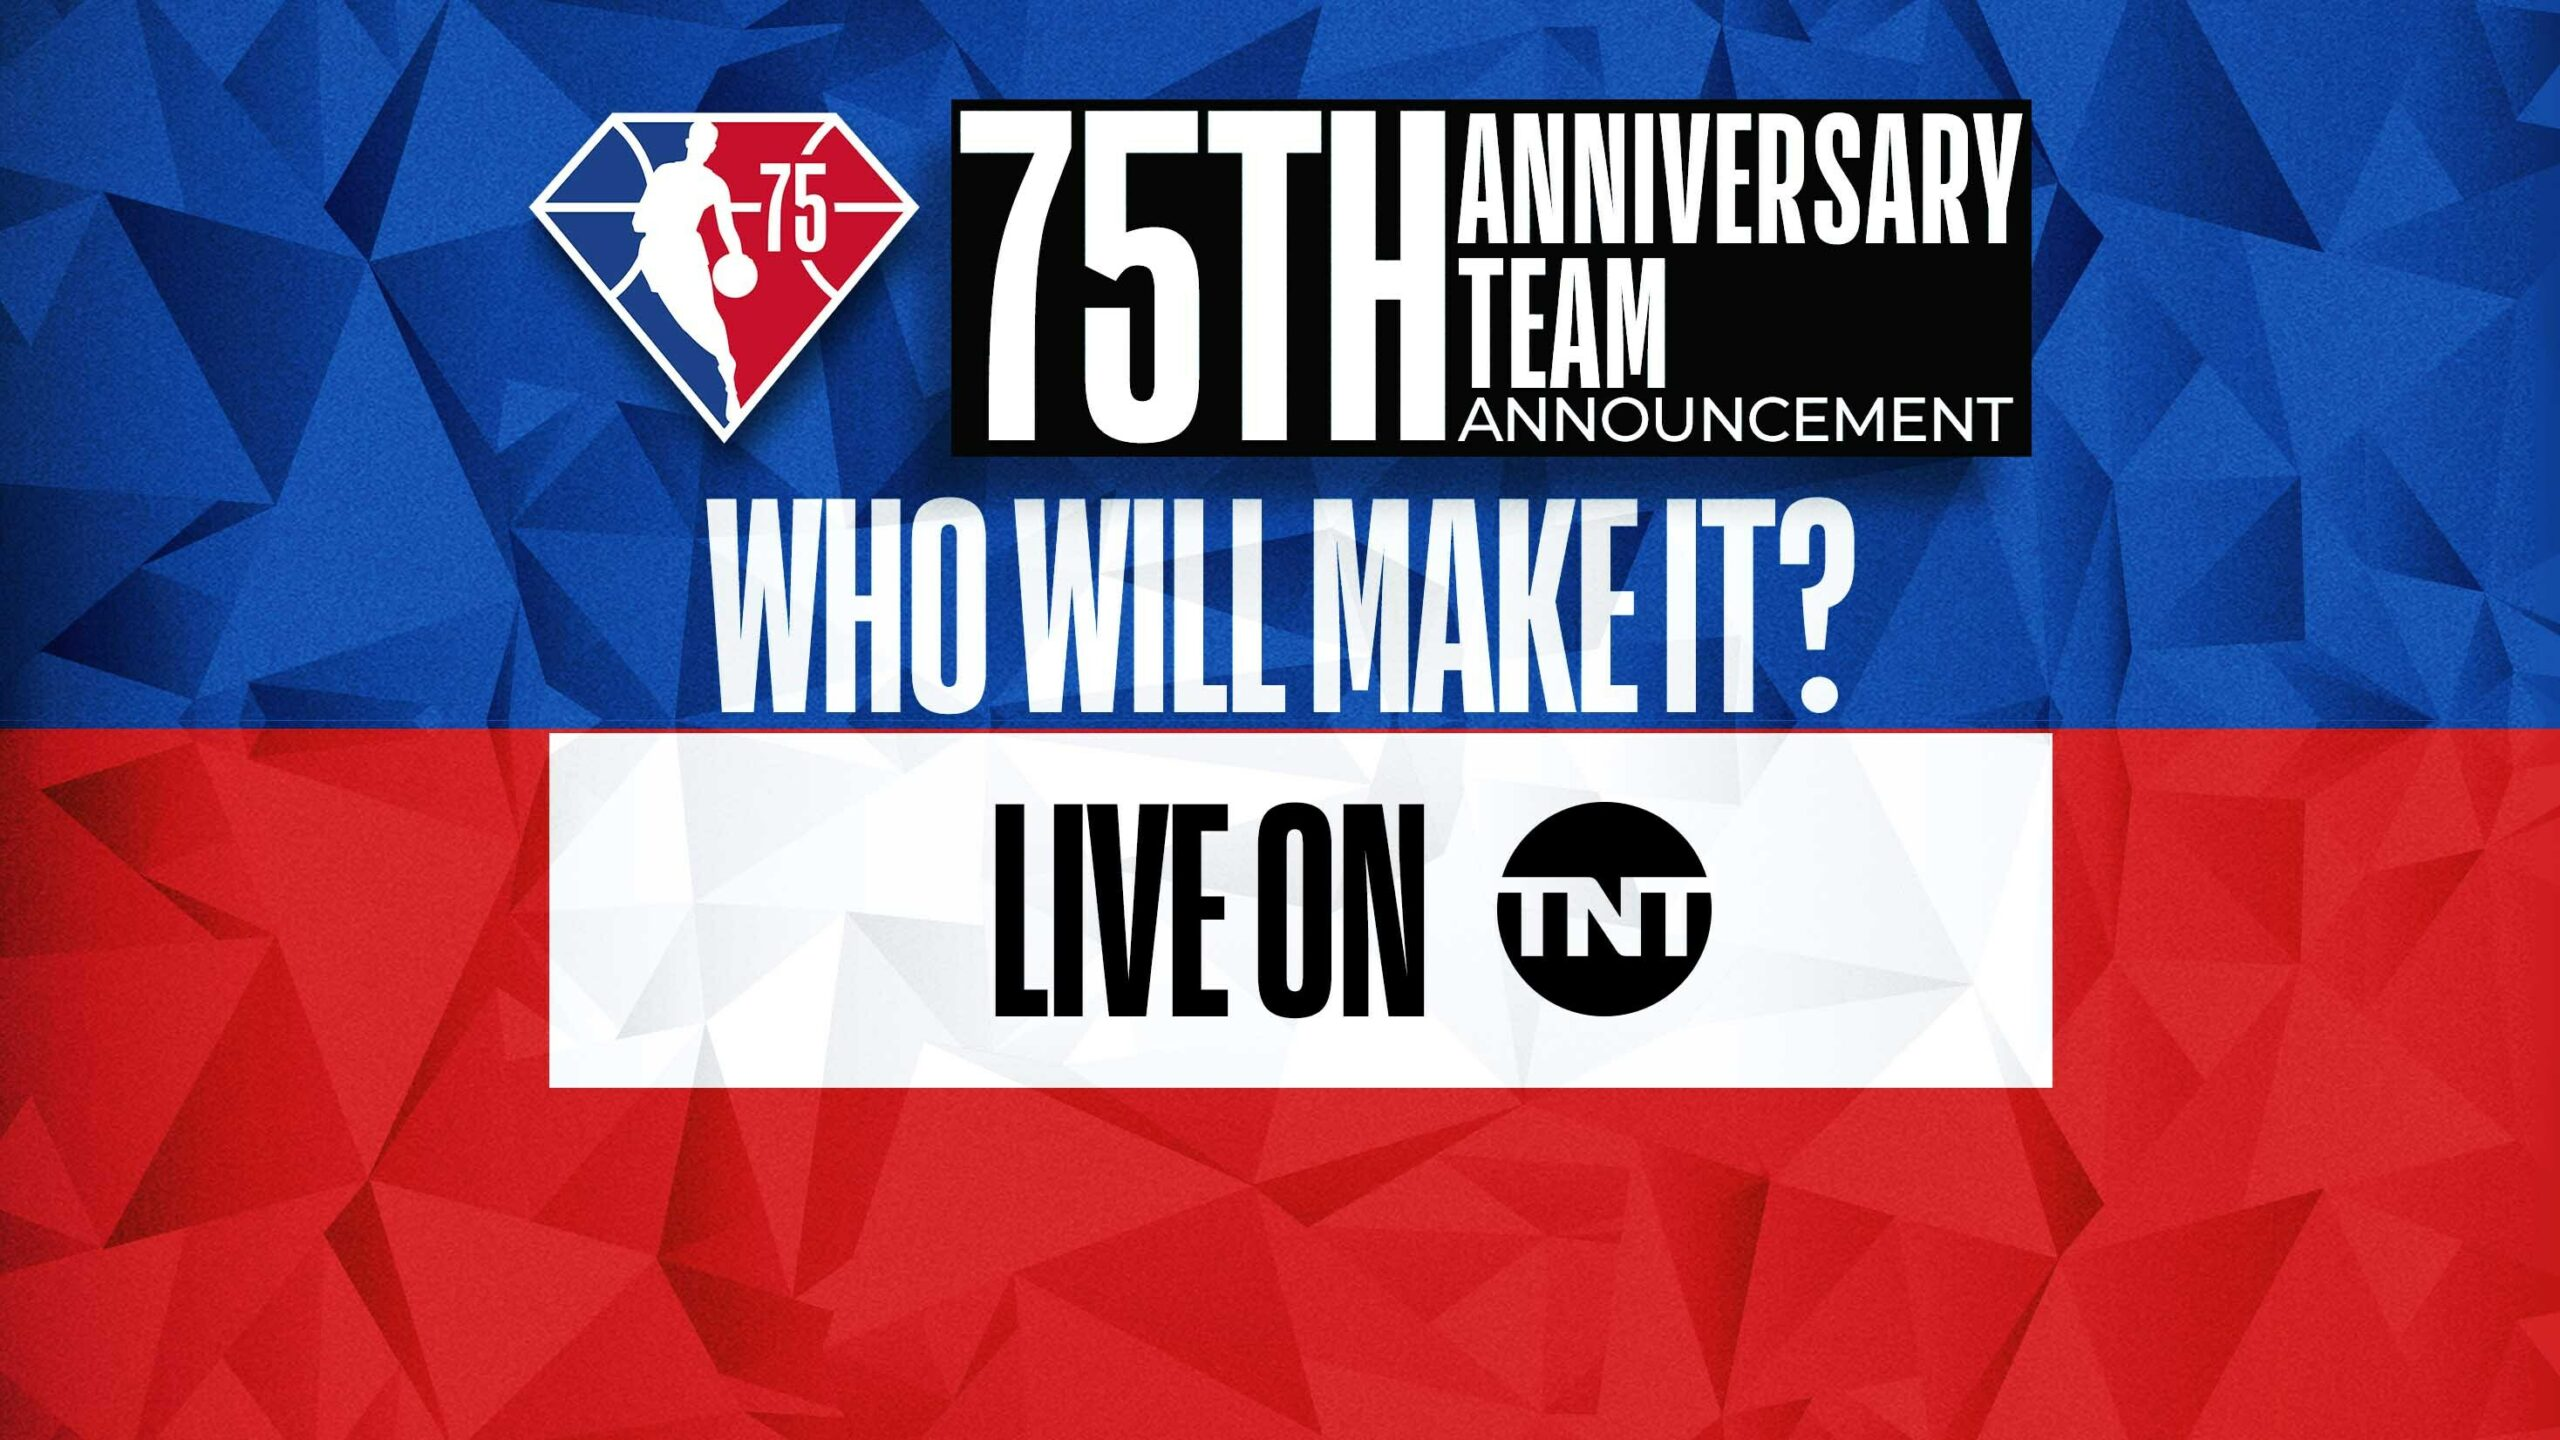 Live Now: Final members of 75th Anniversary Team unveiled